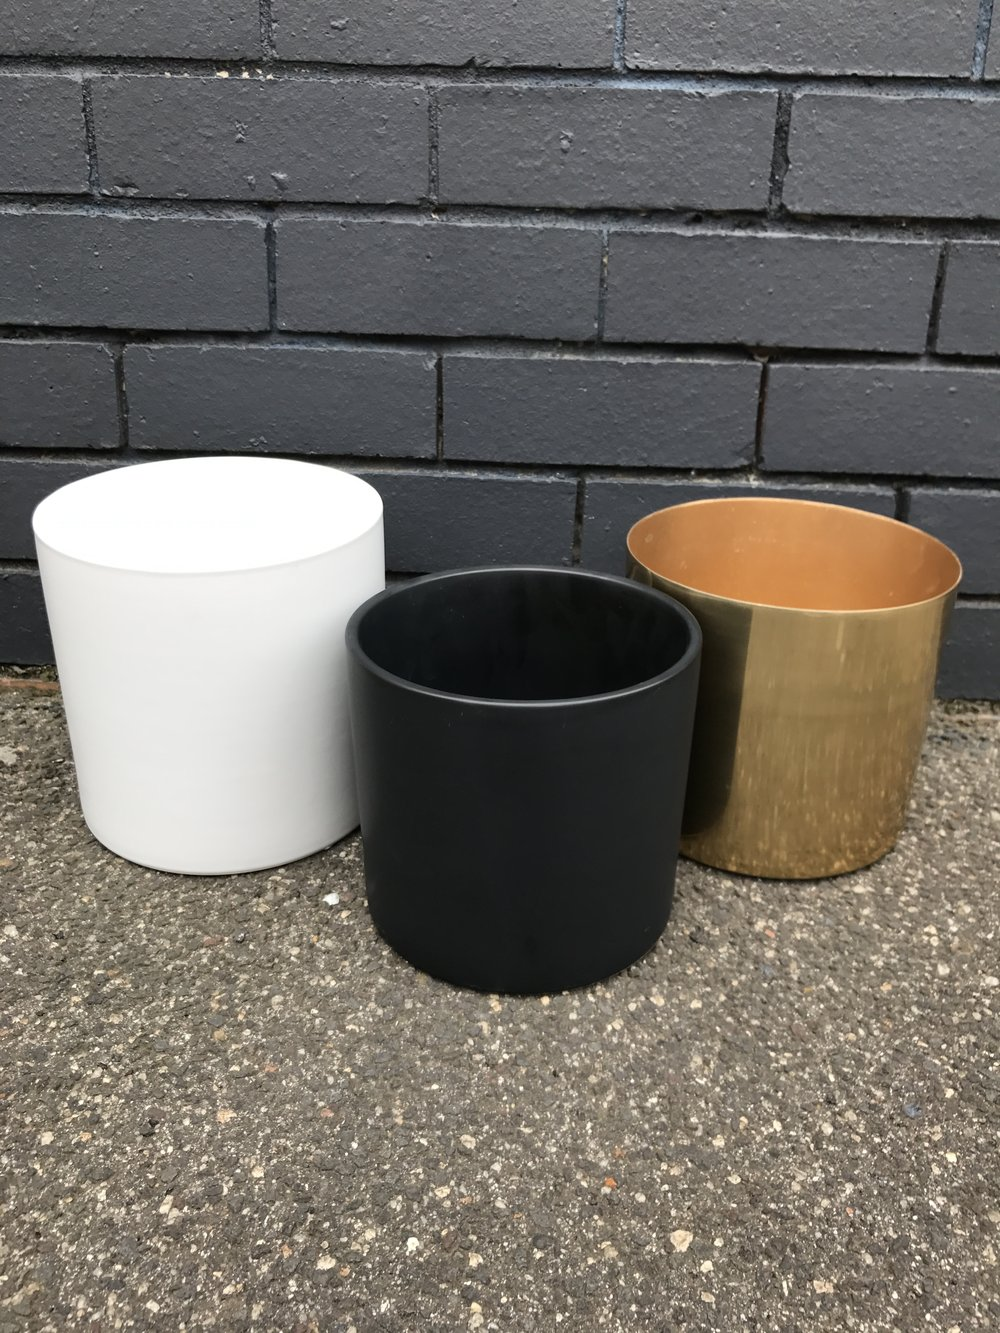 Ceramic and Brass Pots